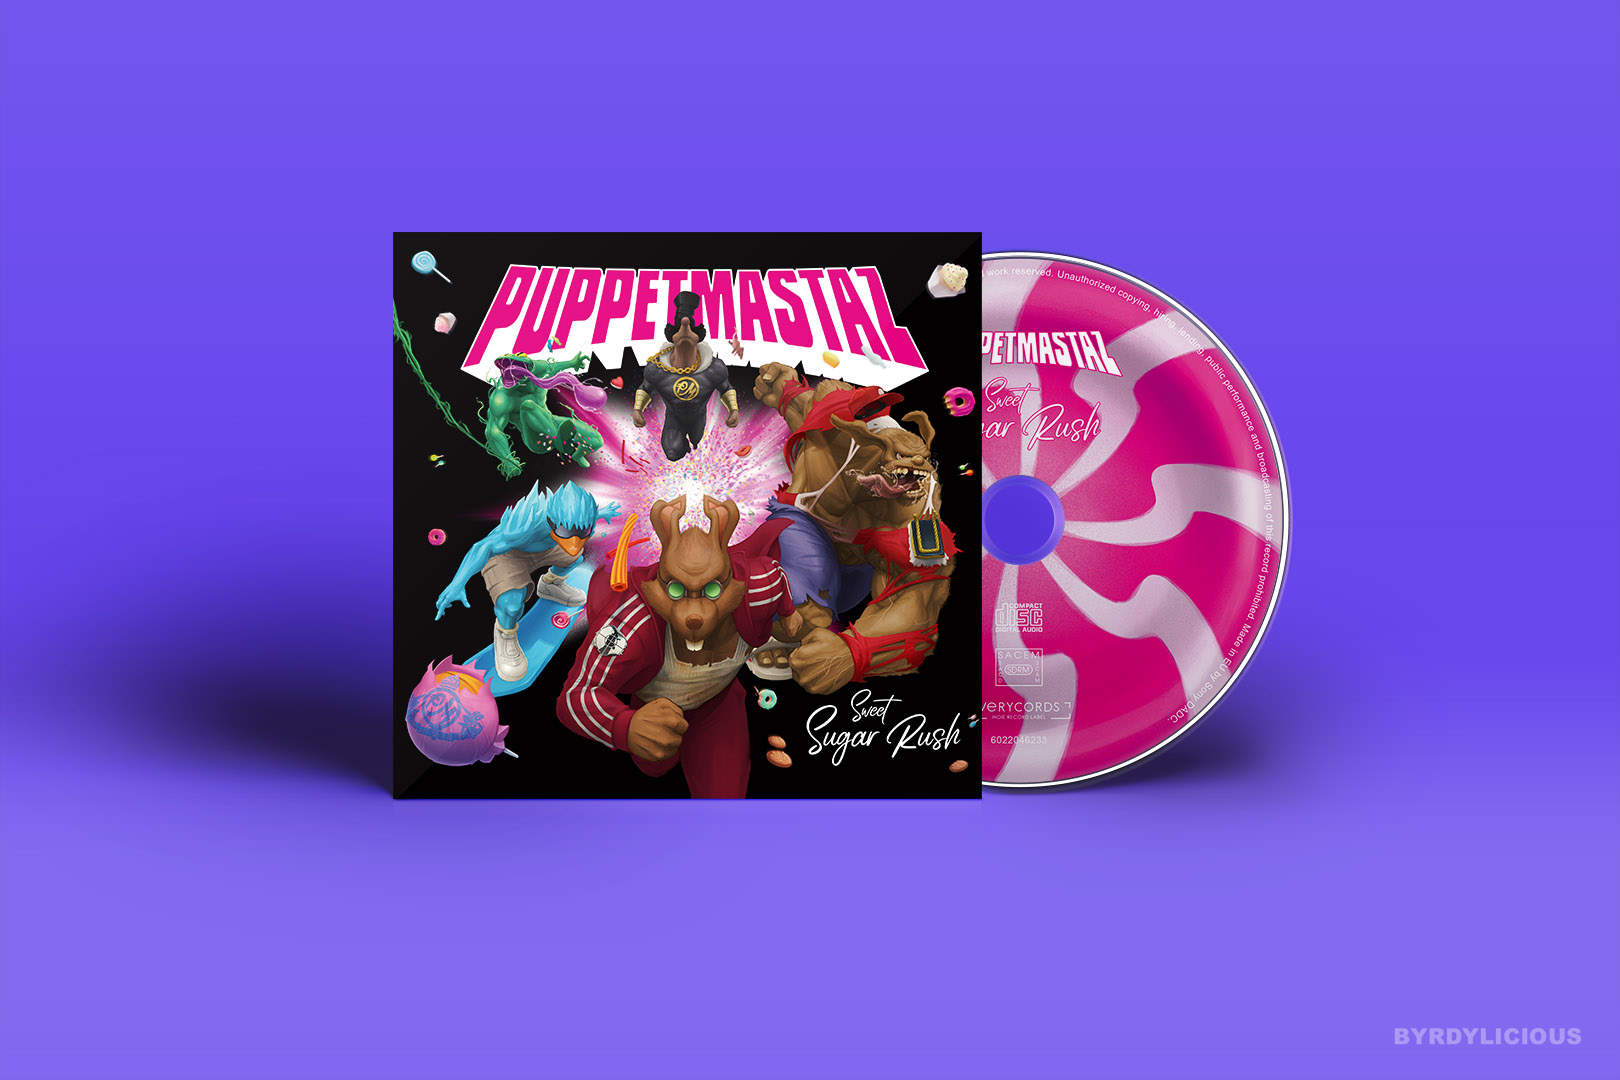 Sweet Sugar Rush Music Album Cover and Cd Artwork